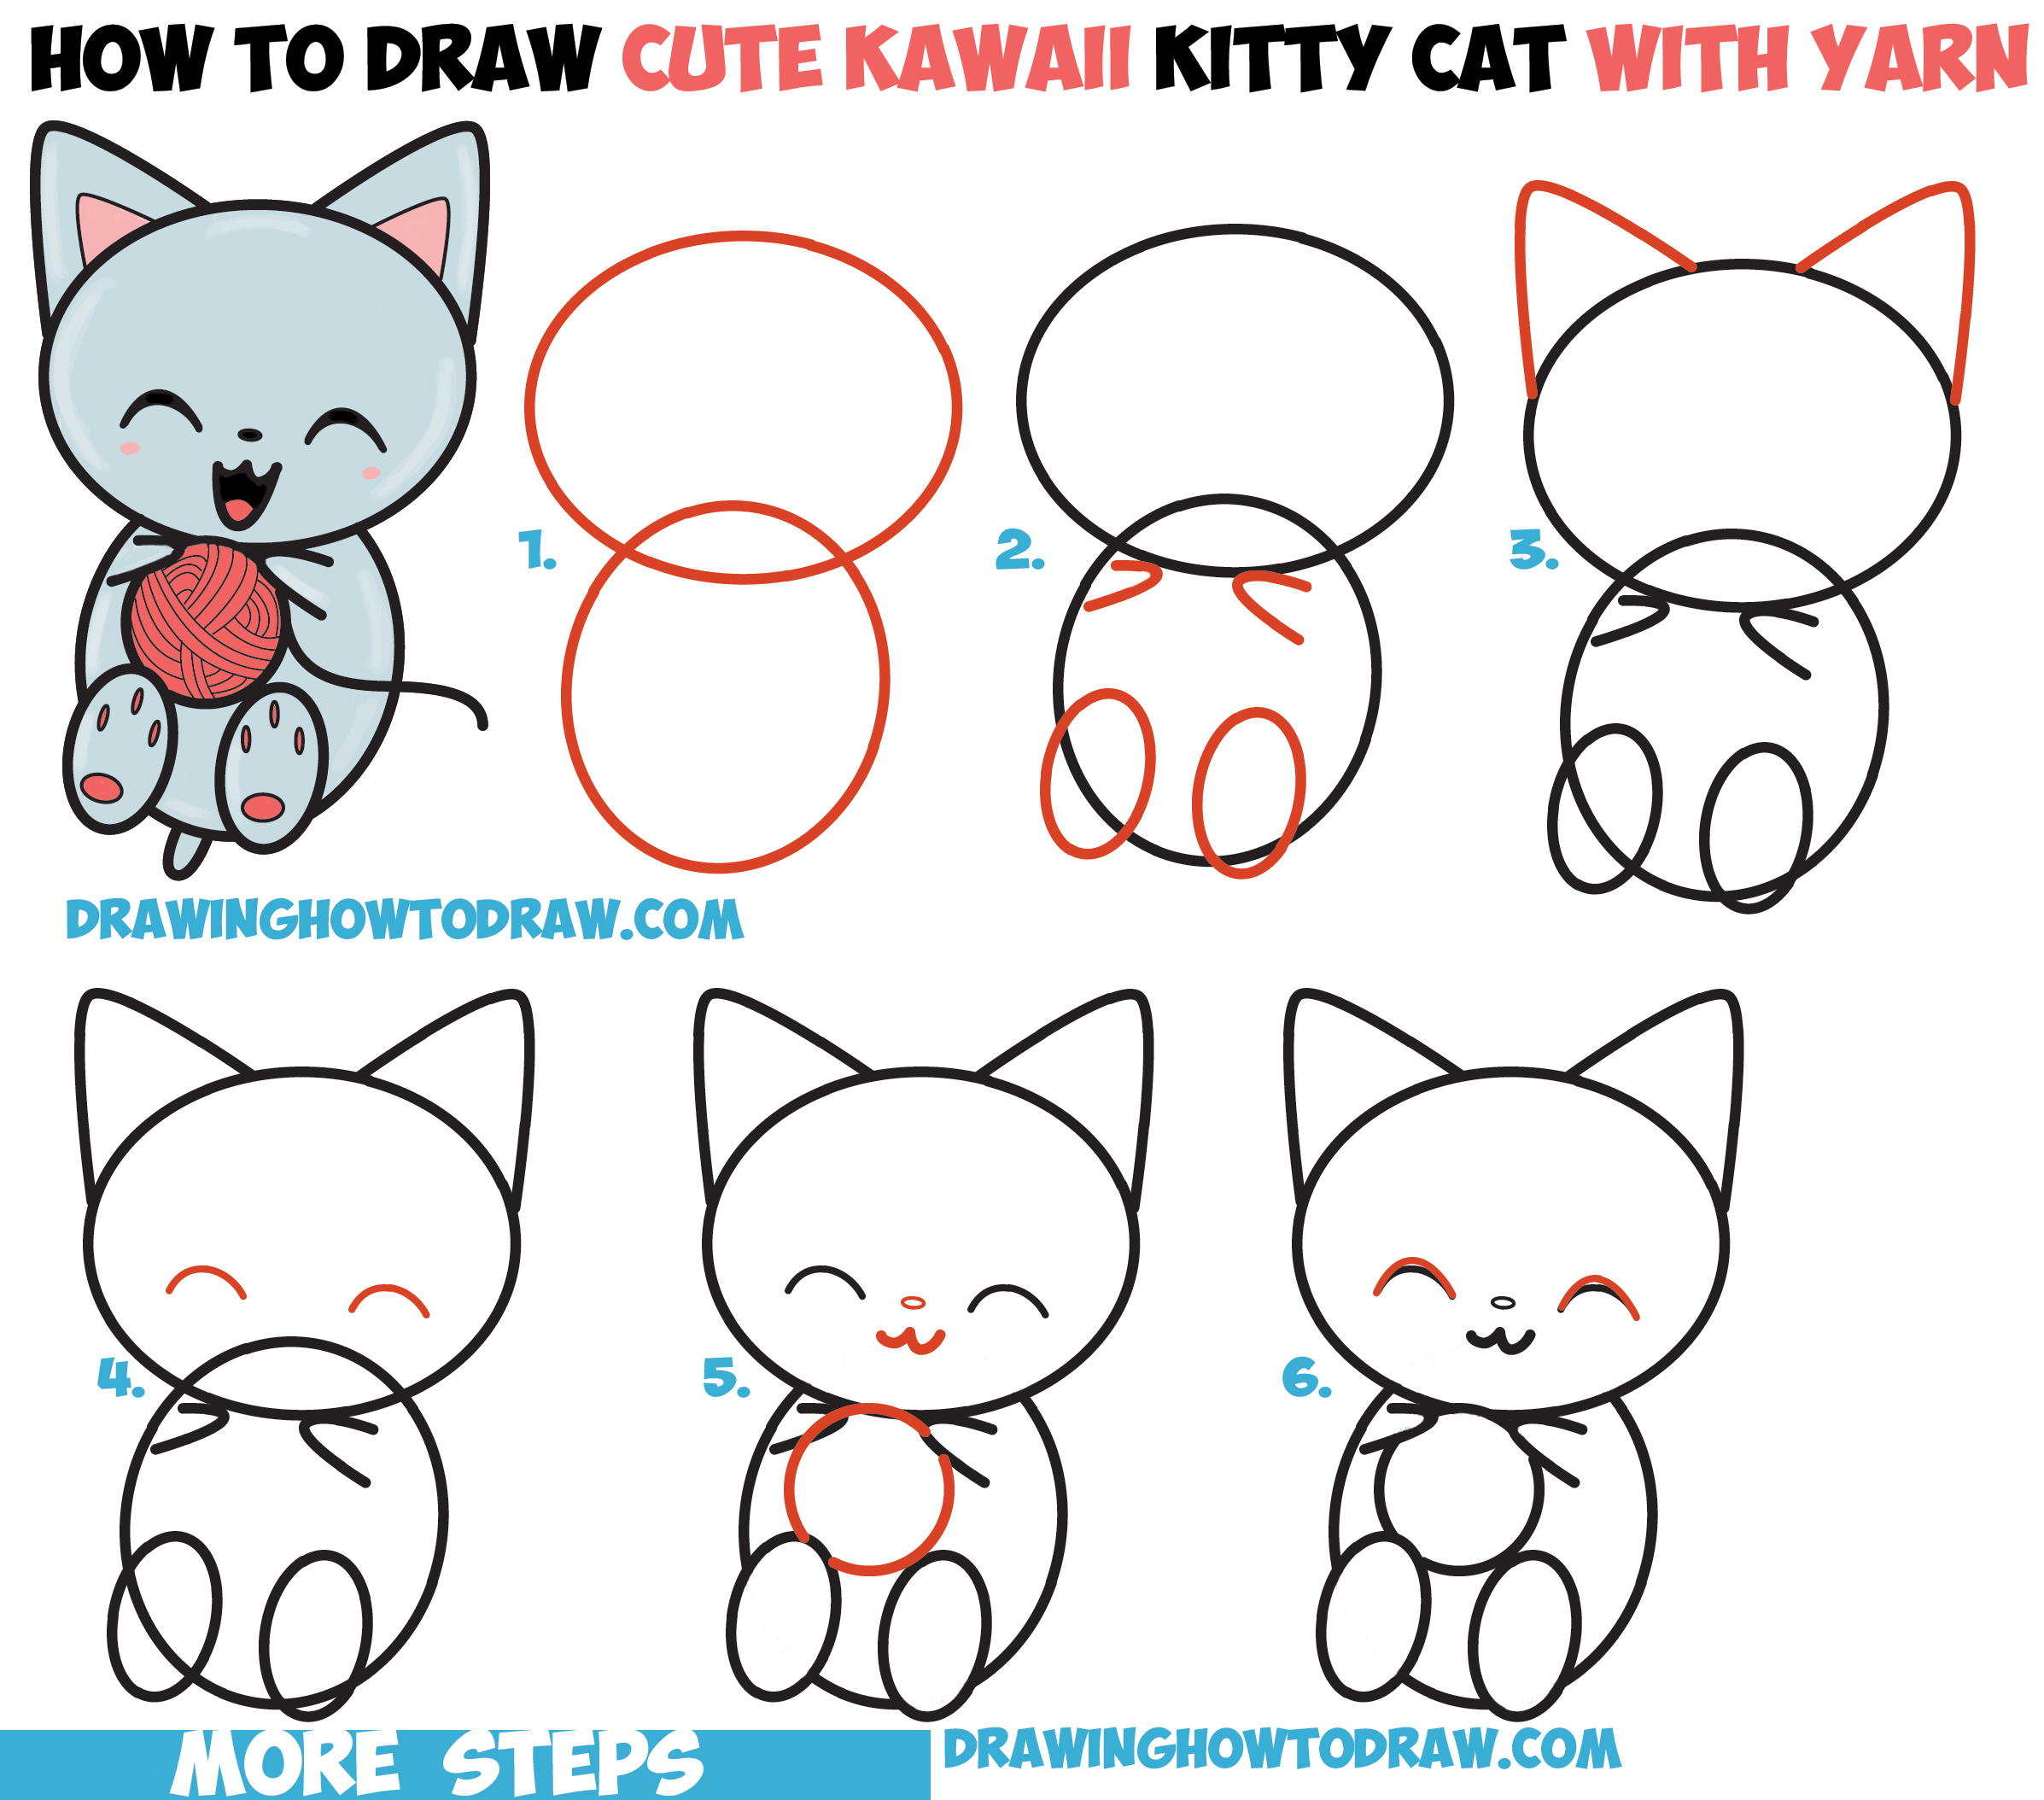 How To Draw Cute Kawaii Kitten Cat Playing With Yarn Easy Step By Step Drawing  How